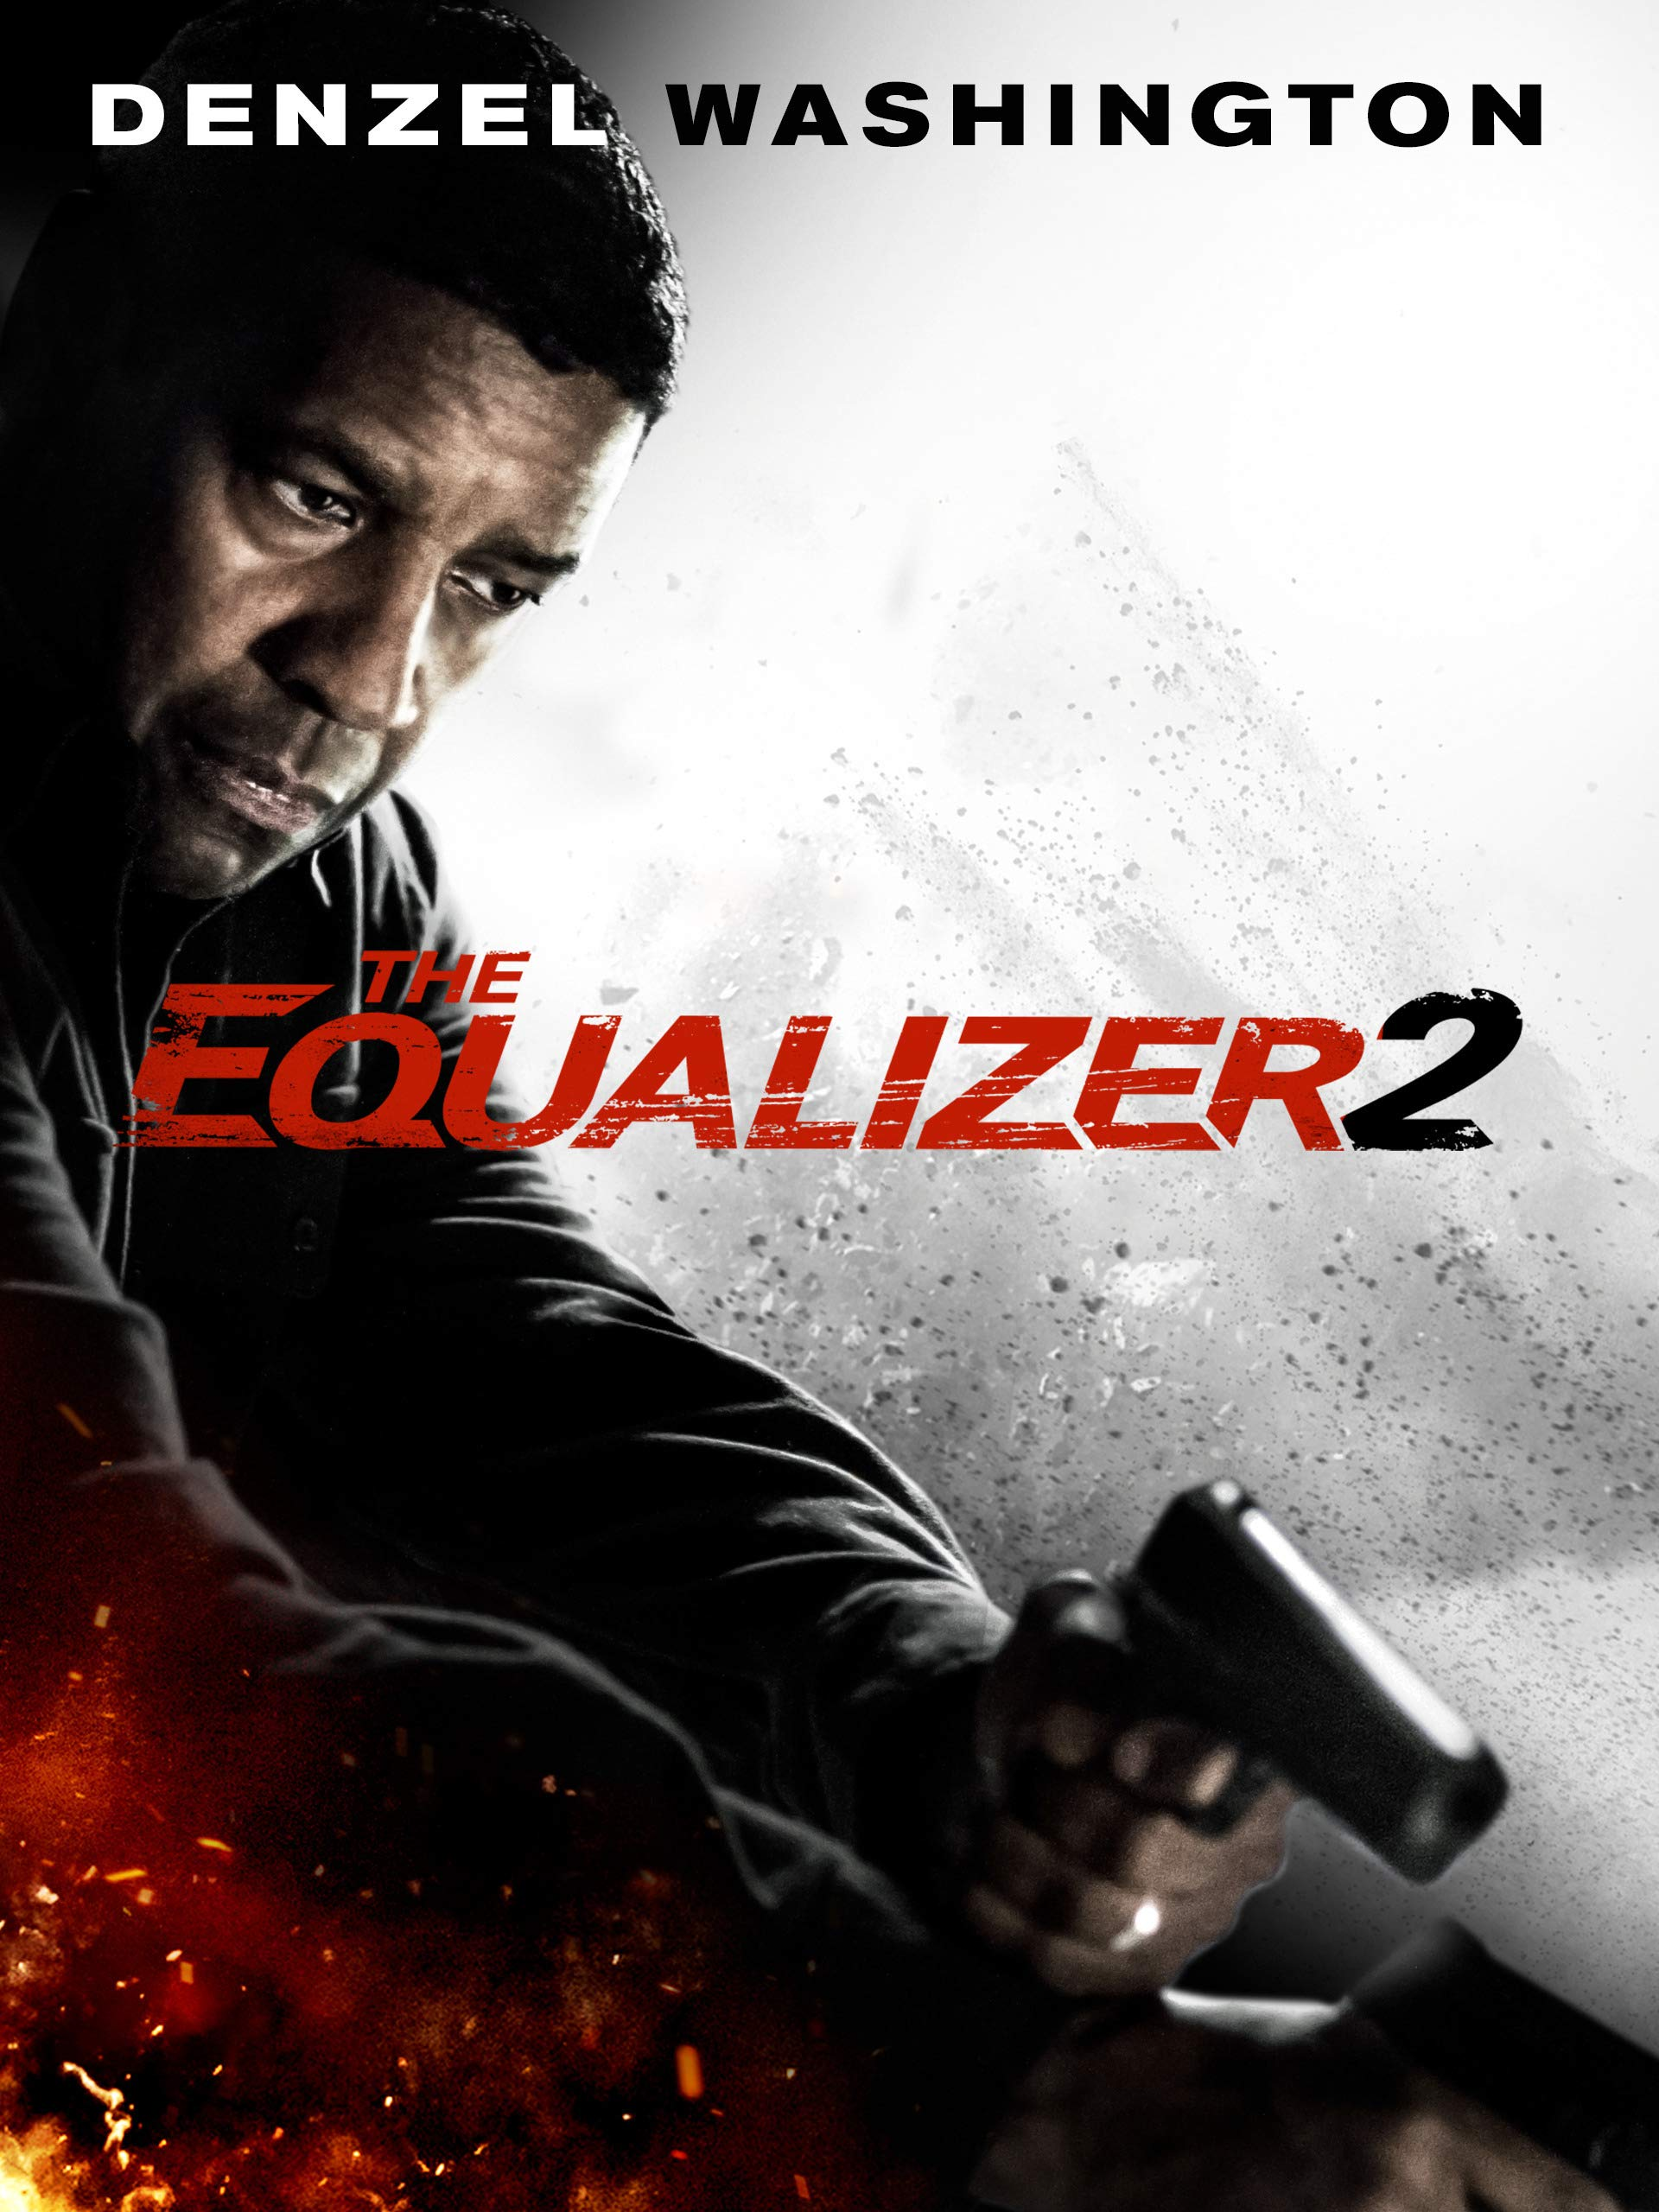 Amazon co uk: Watch The Equalizer 2 | Prime Video